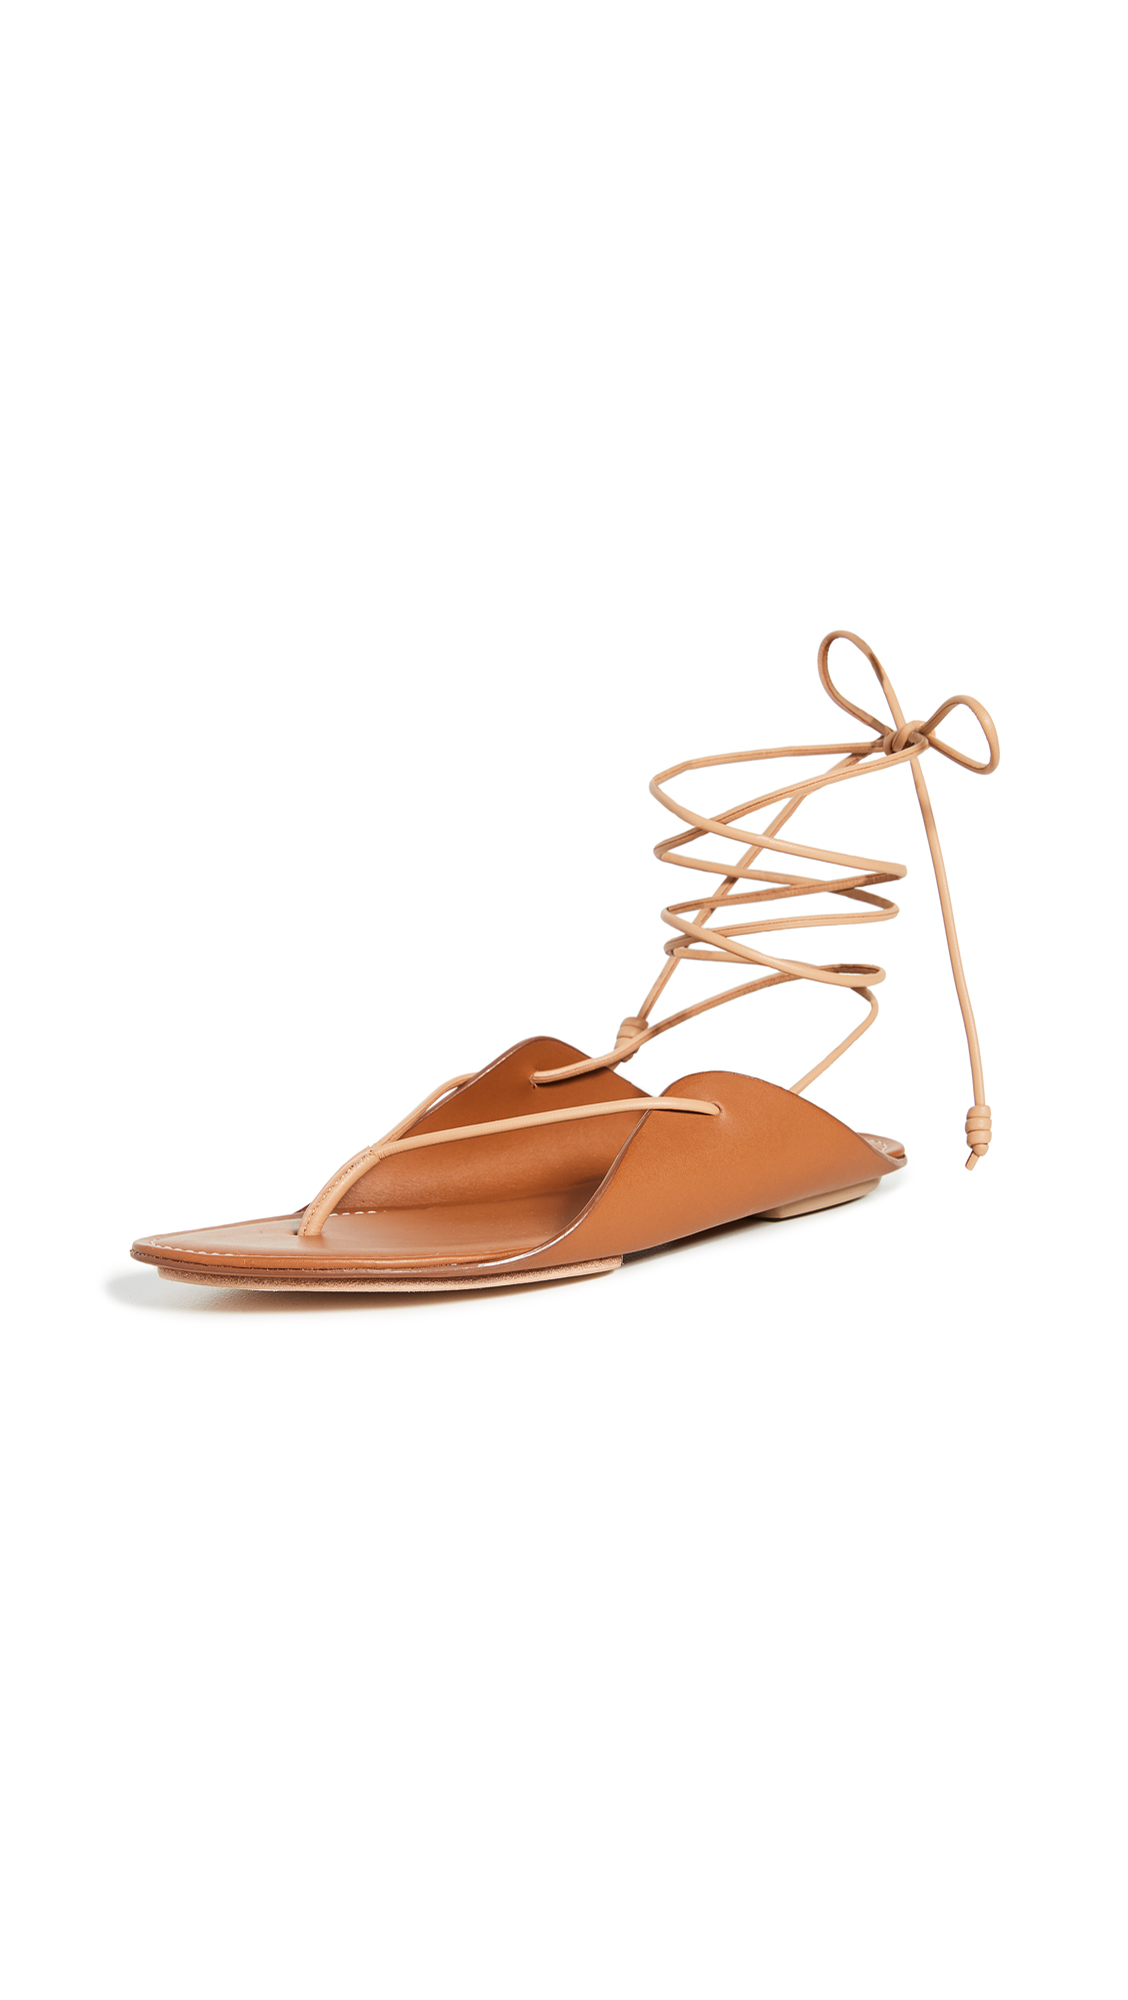 Ulla Johnson Aidy Sandals – 50% Off Sale